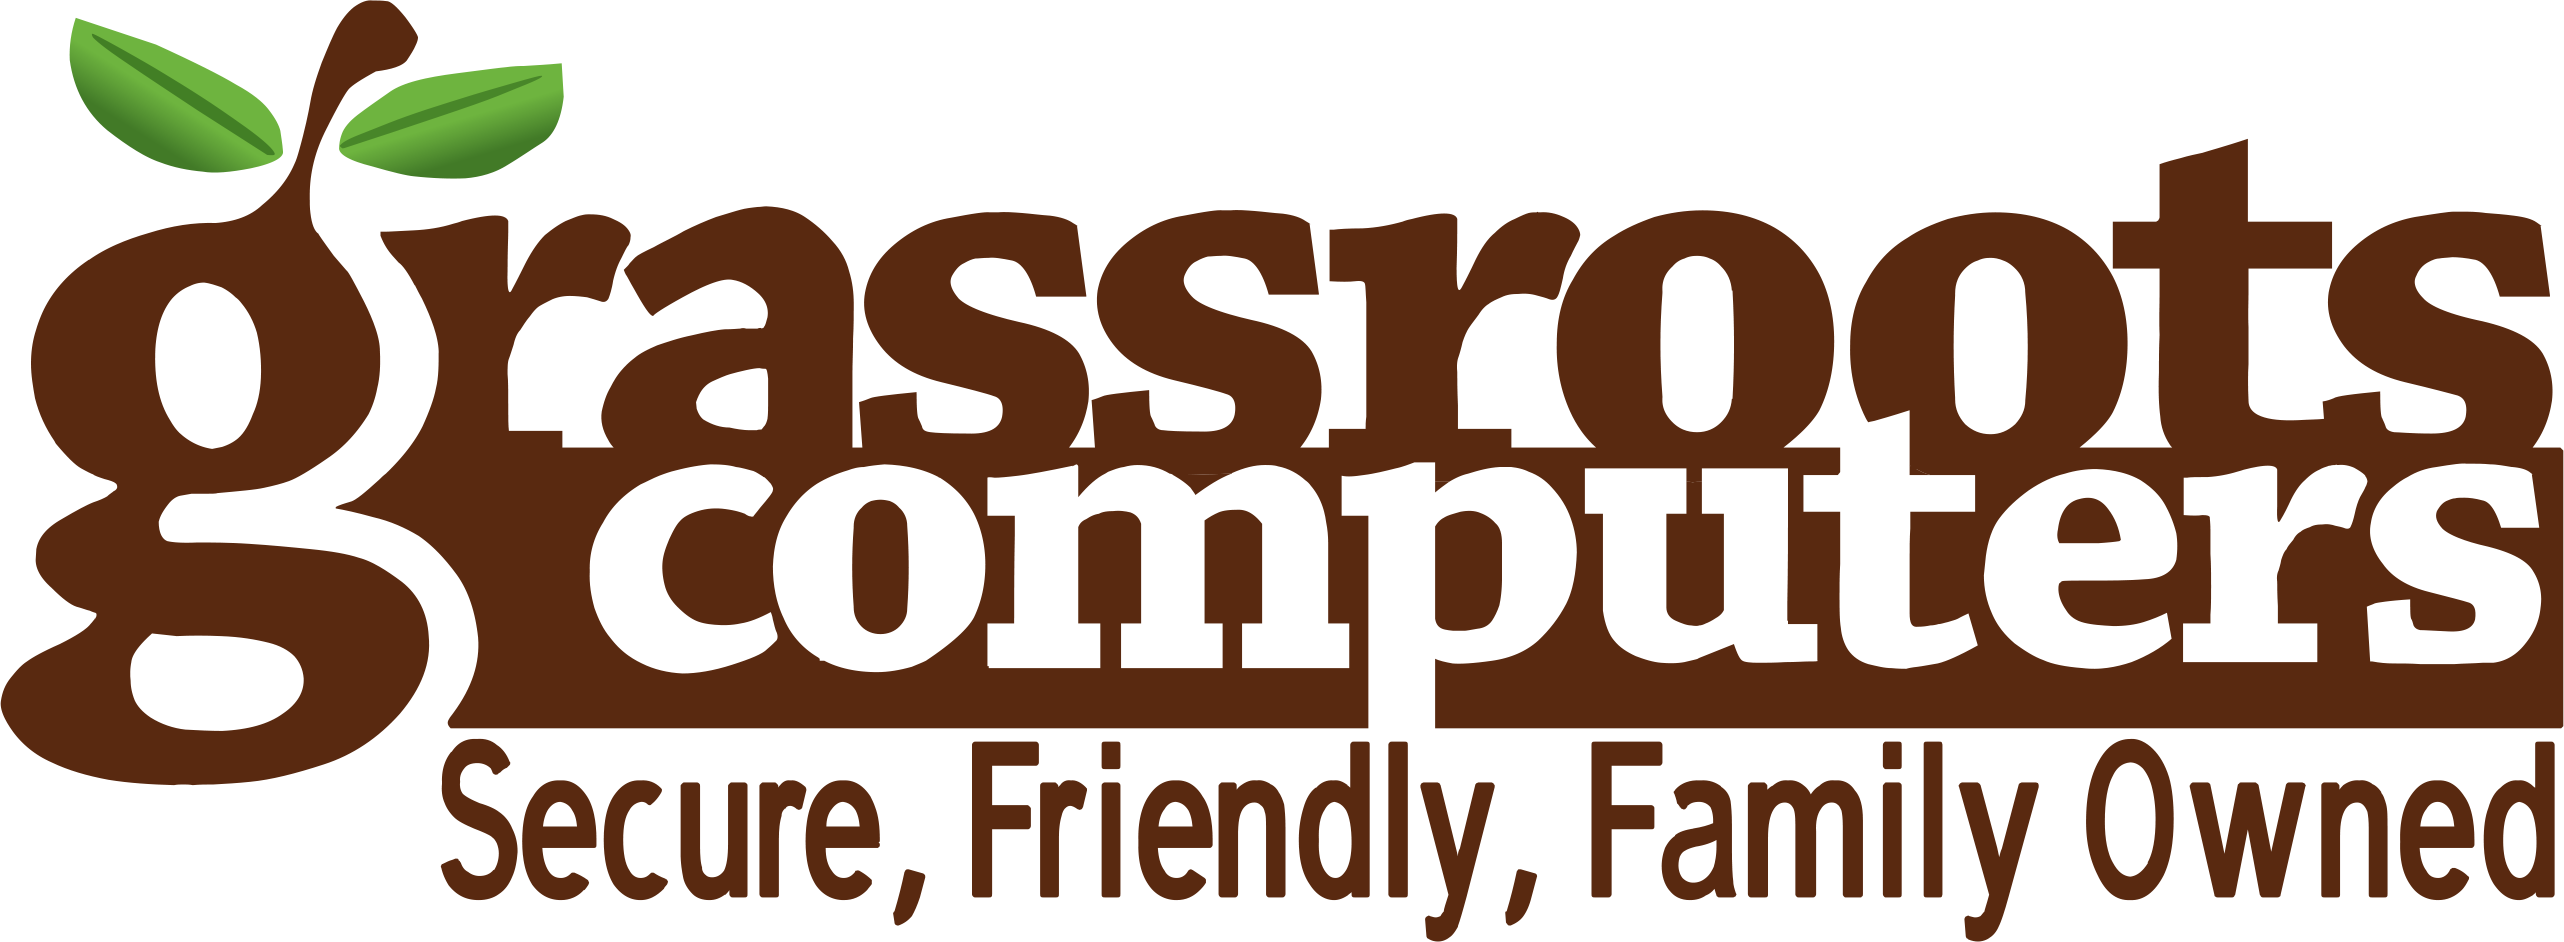 13% off with Grassroots Computers Promo Codes